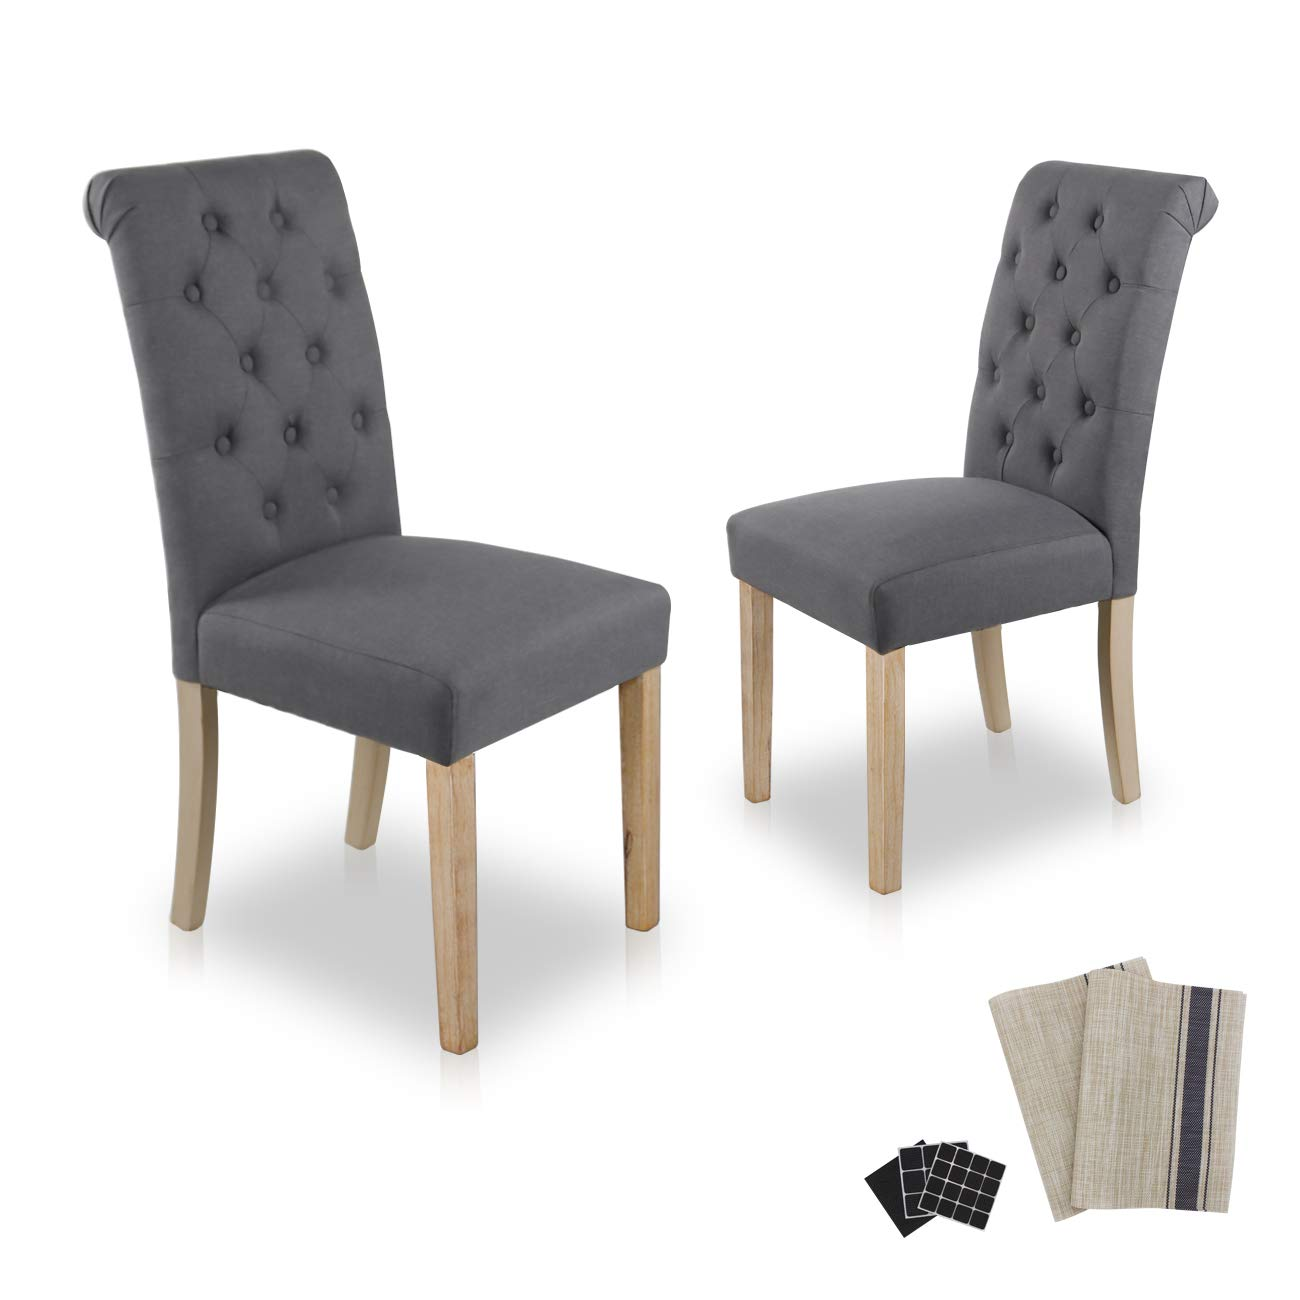 Dining Chairs Set of 2 Fabric Upholstered Lounge Chair Nailed Trim Leisure Padded with Armrest Solid Wood Legs Kitchen & Dining Furniture (Grey Straight Leg-2)